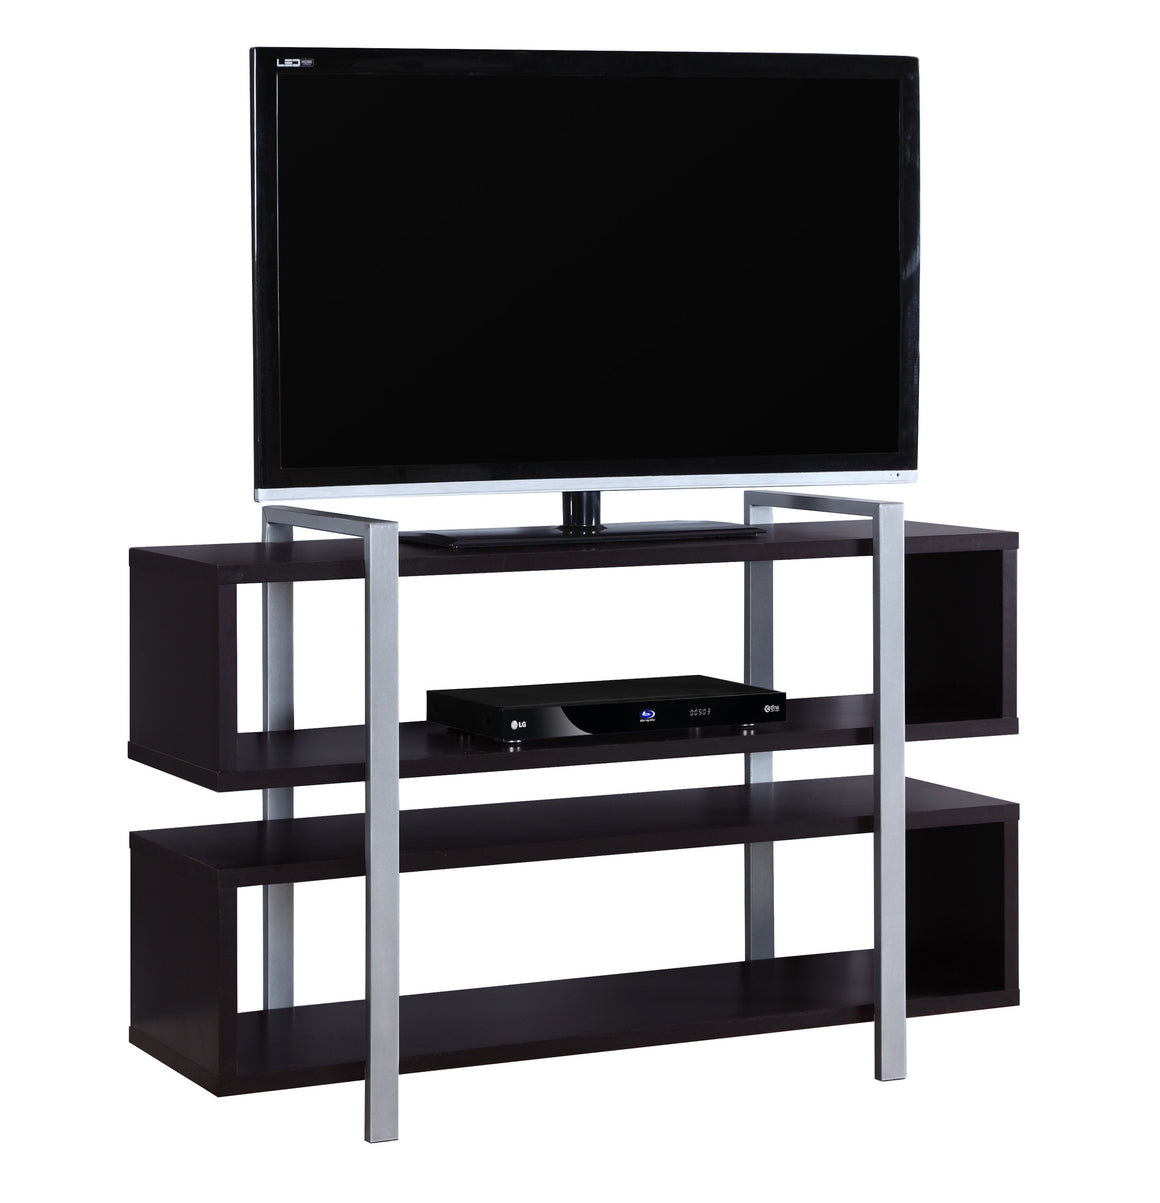 "48""L X 32""H Cappuccino Bookcase And TV Stand by Monarch Specialties Inc. - White Background - The Office Furniture Depot"